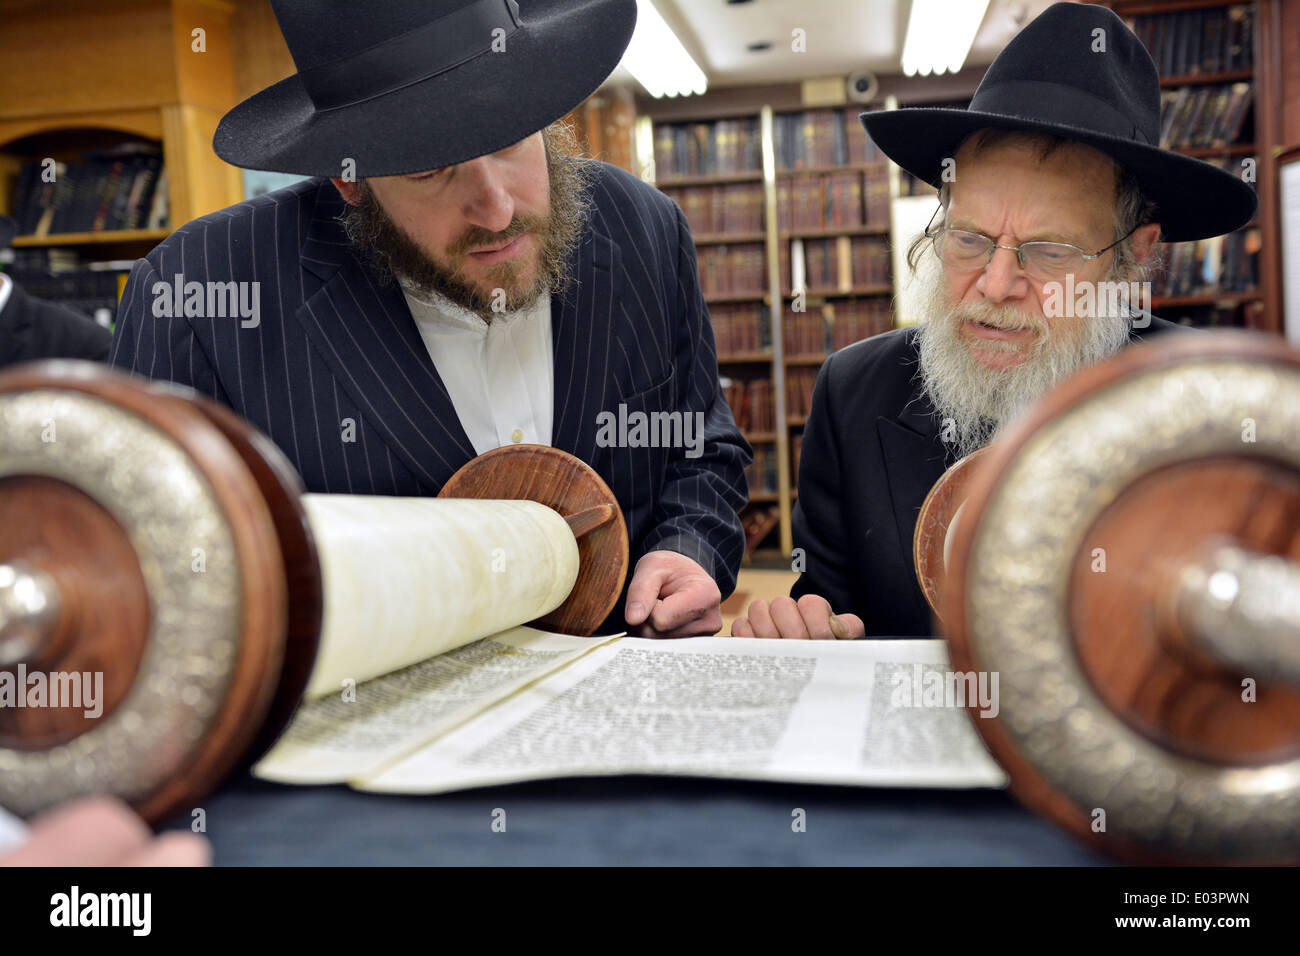 Torah reading during Passover morning prayers at a synagogue in Brooklyn, New York - Stock Image